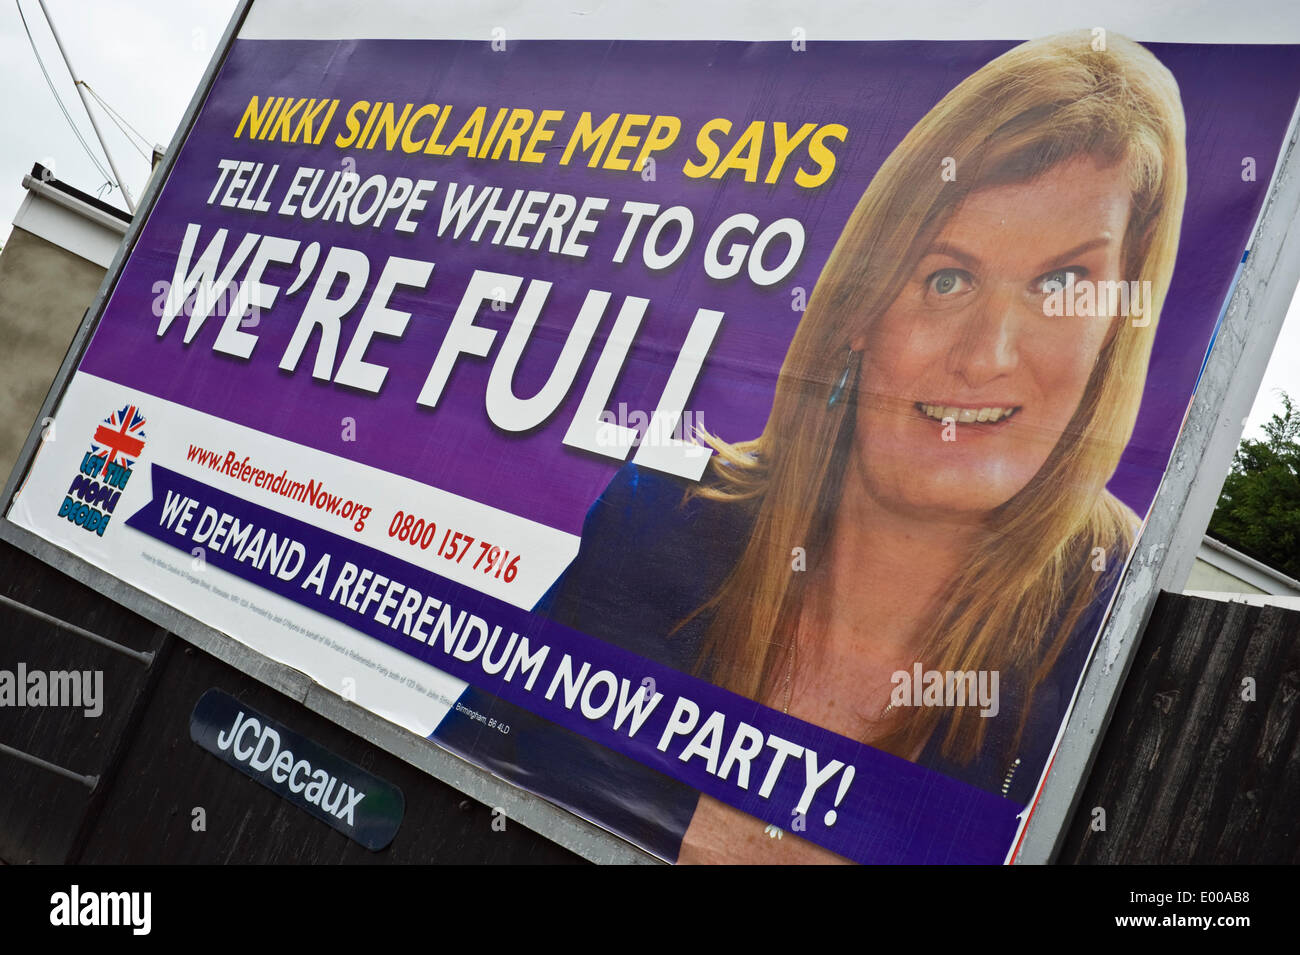 Hereford, England, UK. 28th April 2014. 48 sheet advertising billboard hoarding for Nikki Sinclaire MEP of the We Demand a Referendum Now Party, Member of the European Parliament for the West Midlands. 2014 European Parliament election is scheduled to be held on Thursday 22 May 2014. - Stock Image